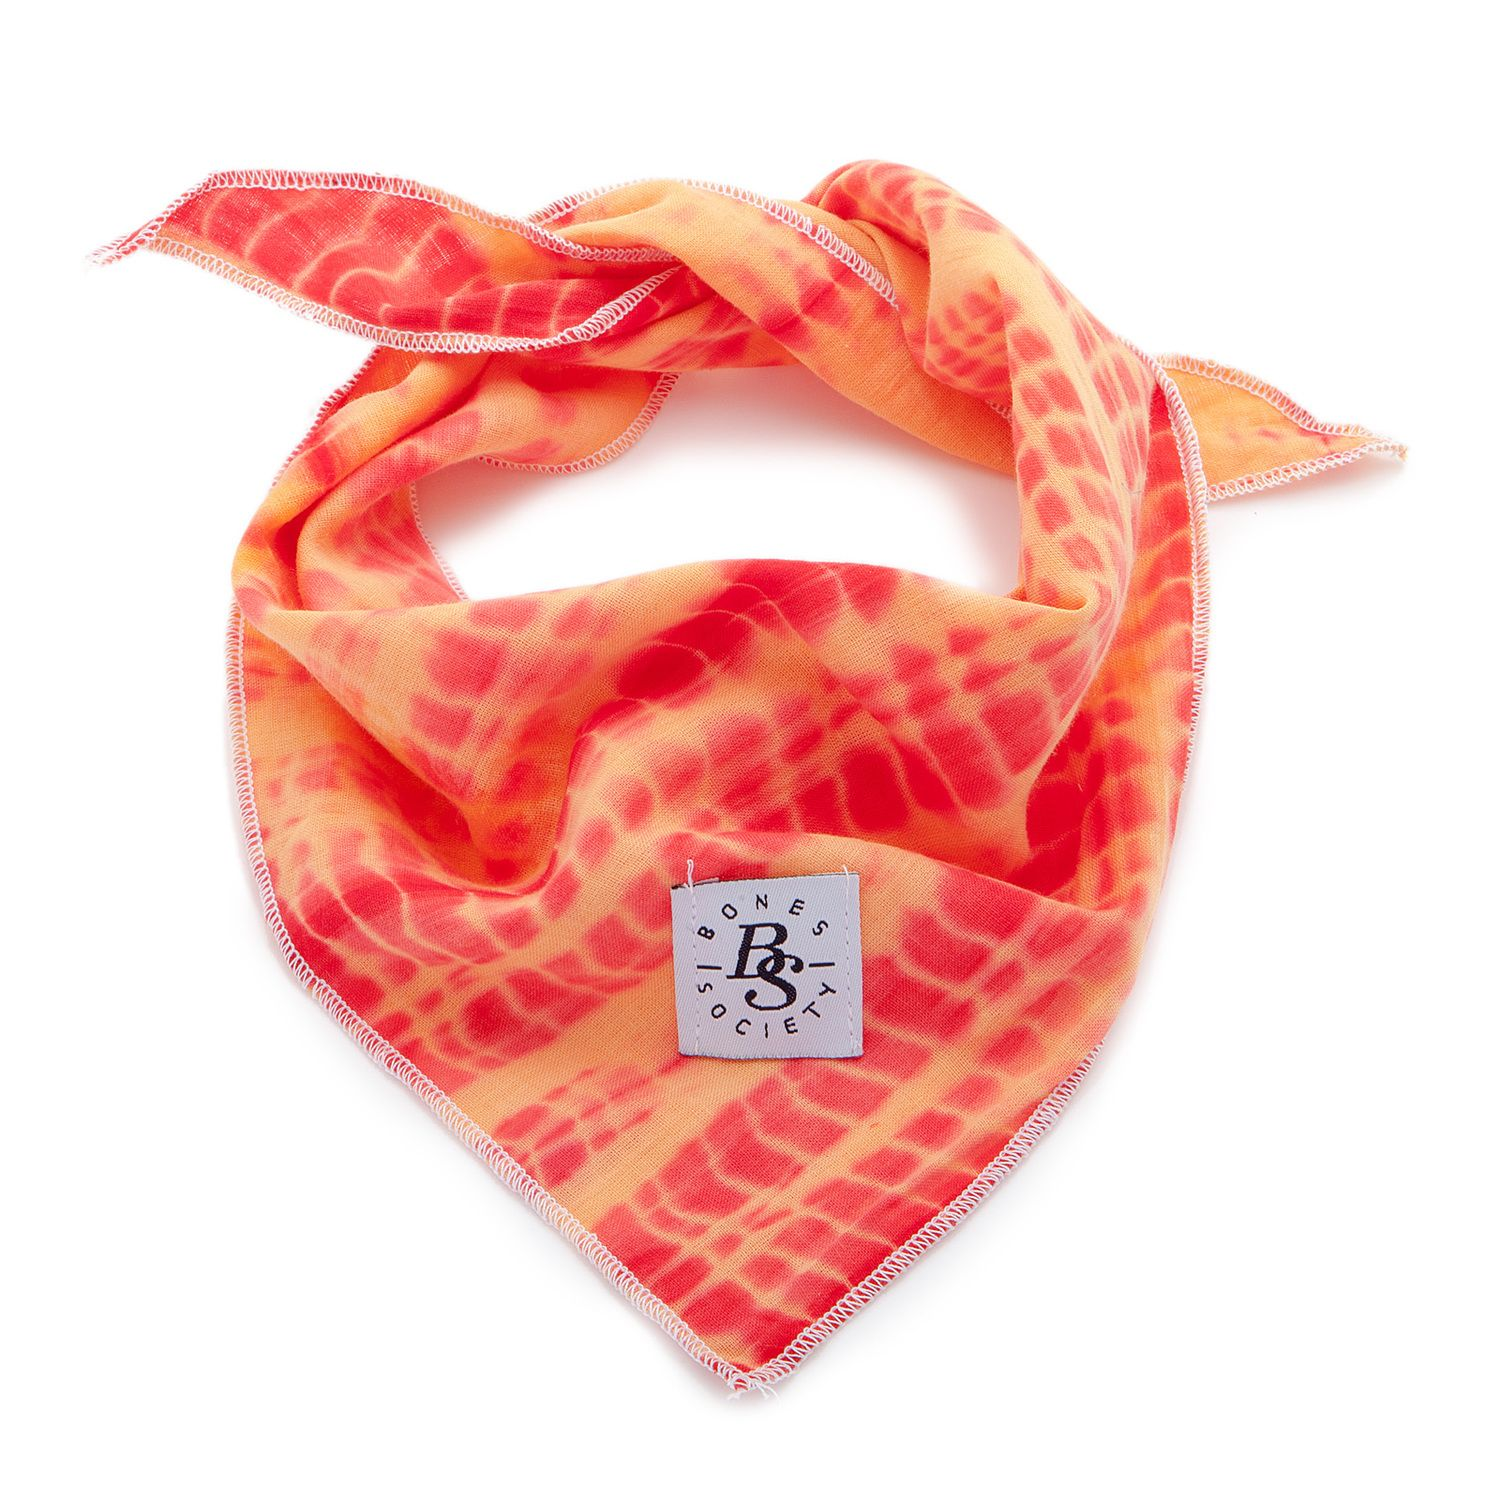 BONES SOCIETY | Kick Arse Bandana in Orange Shibori Tie Dye